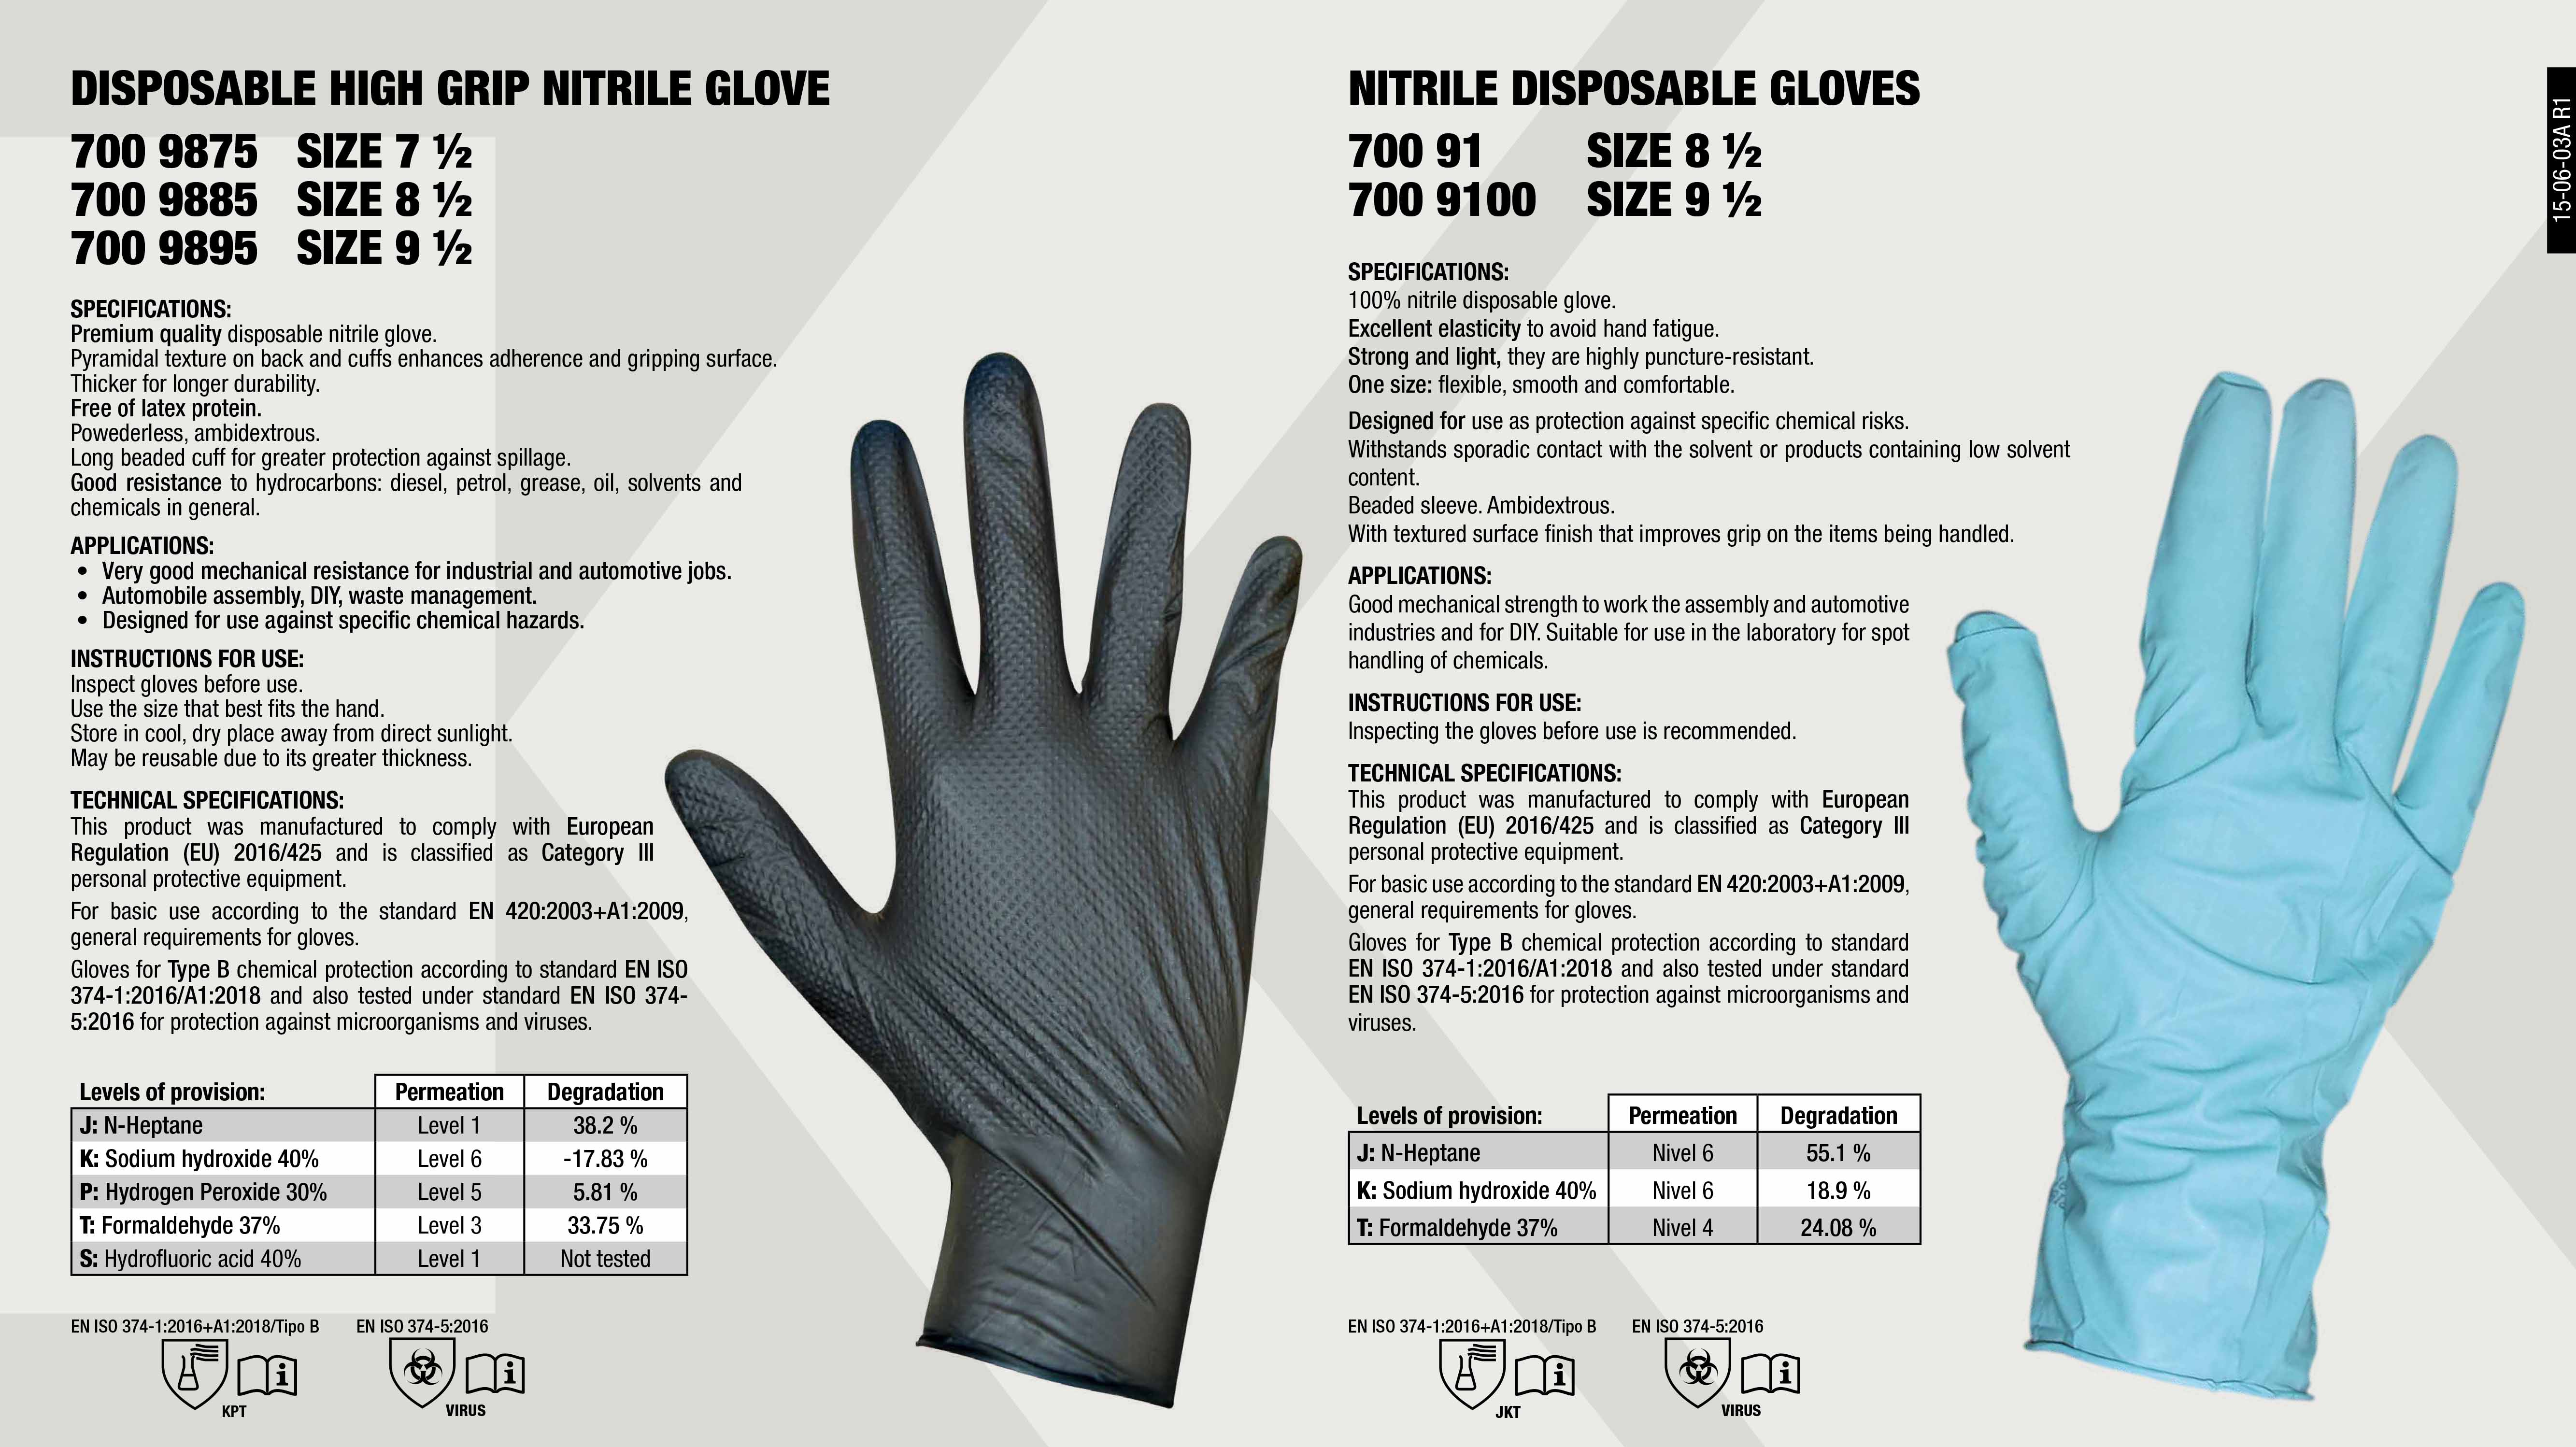 HARNESS&BELT KIT                                            ,  SAFETY HARNESS                                              ,  SNAP HARNESS                                                ,  ROPE HARNESS 1.5M                                           ,